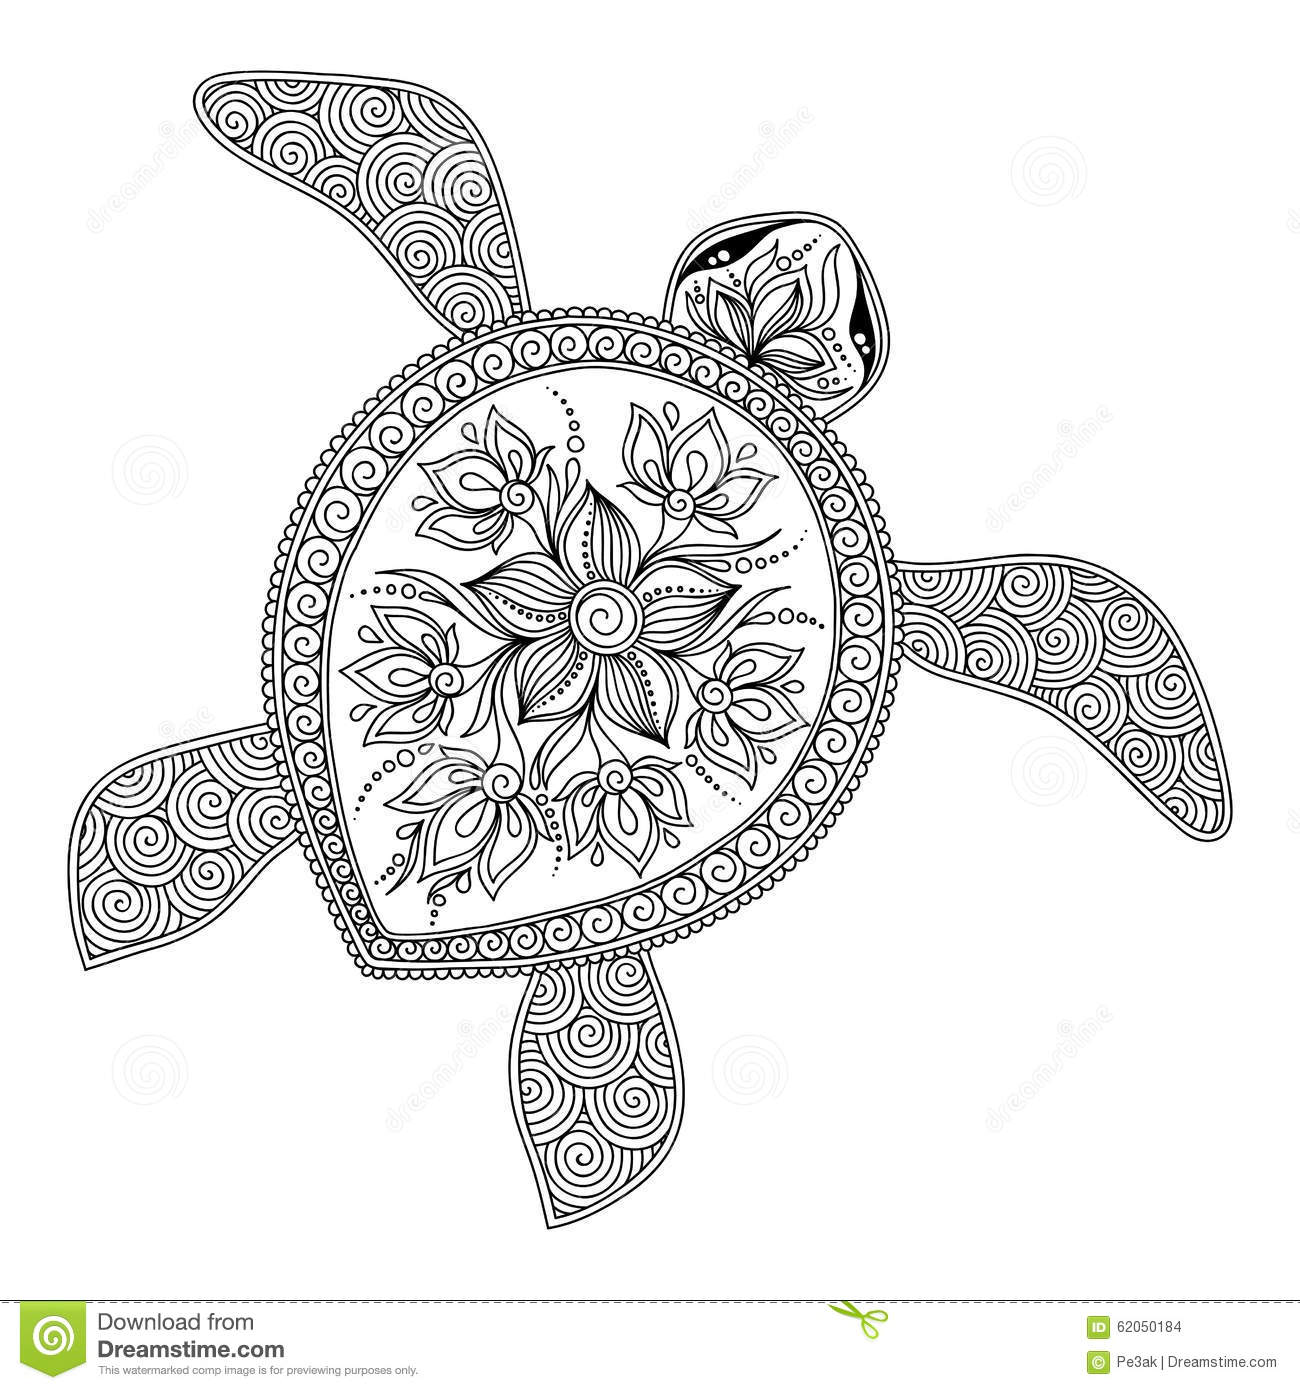 Pattern For Coloring Book. Decorative Graphic Turtle